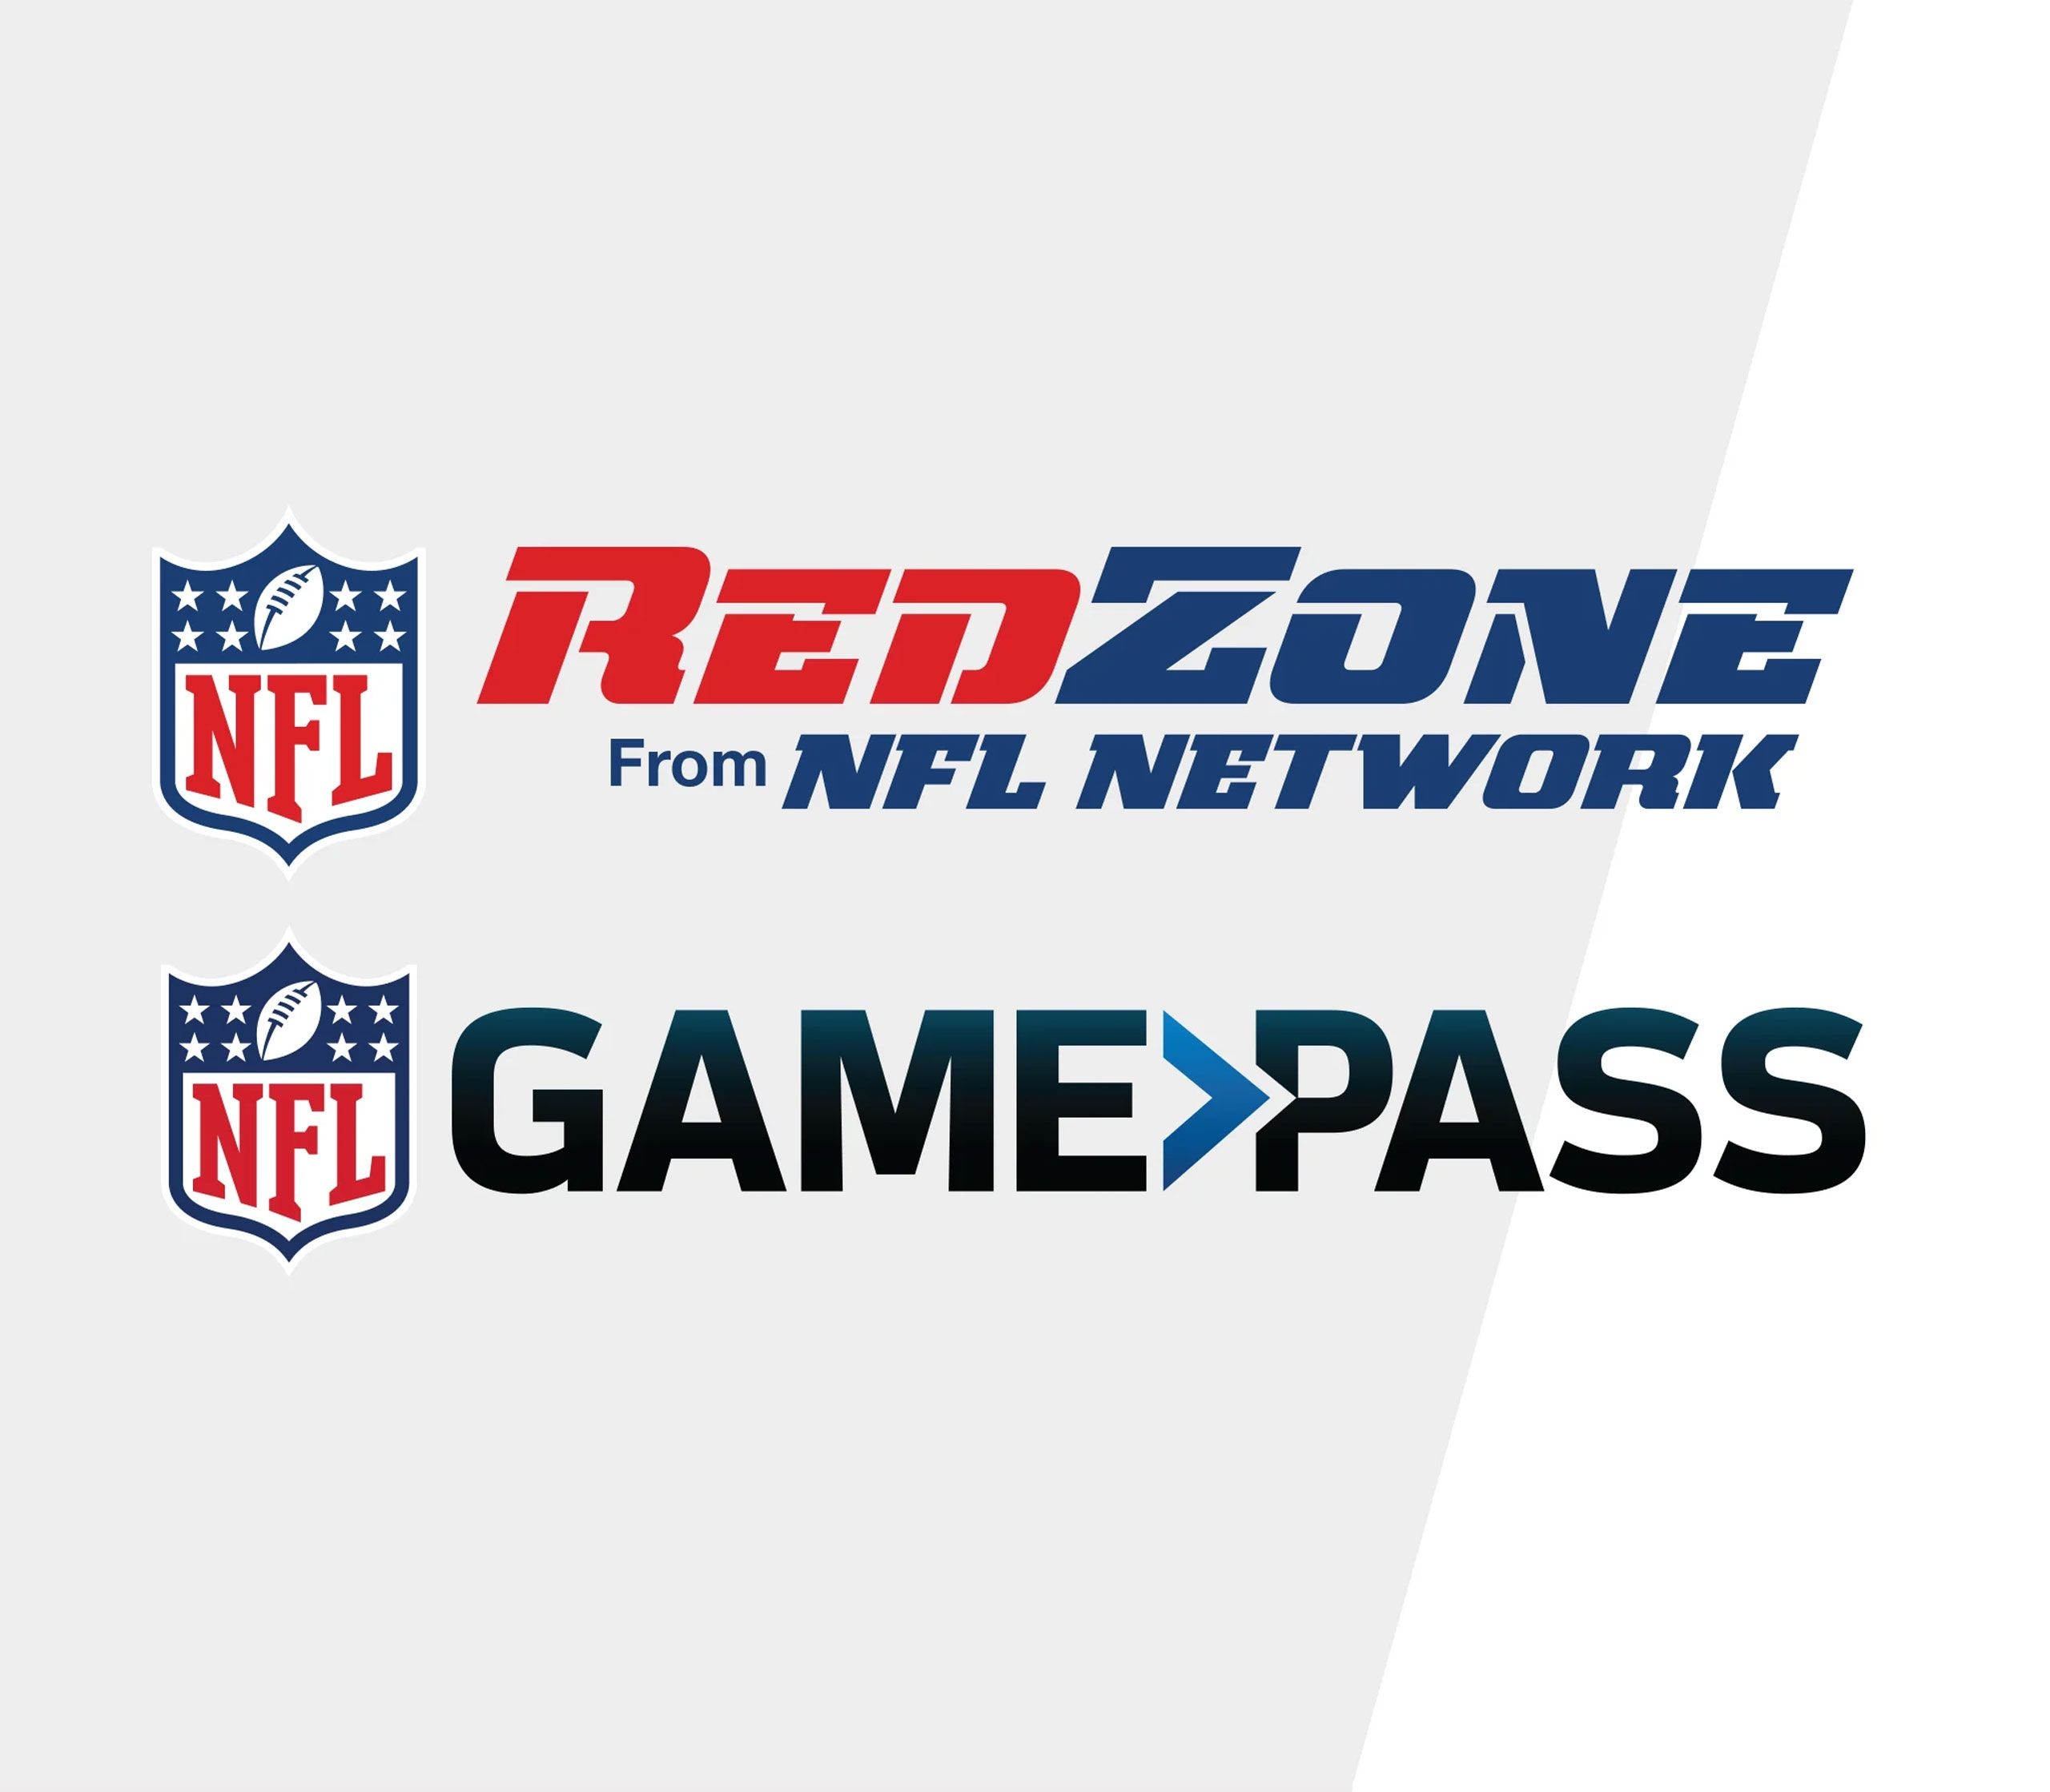 Free NFL Game Pass and RedZone